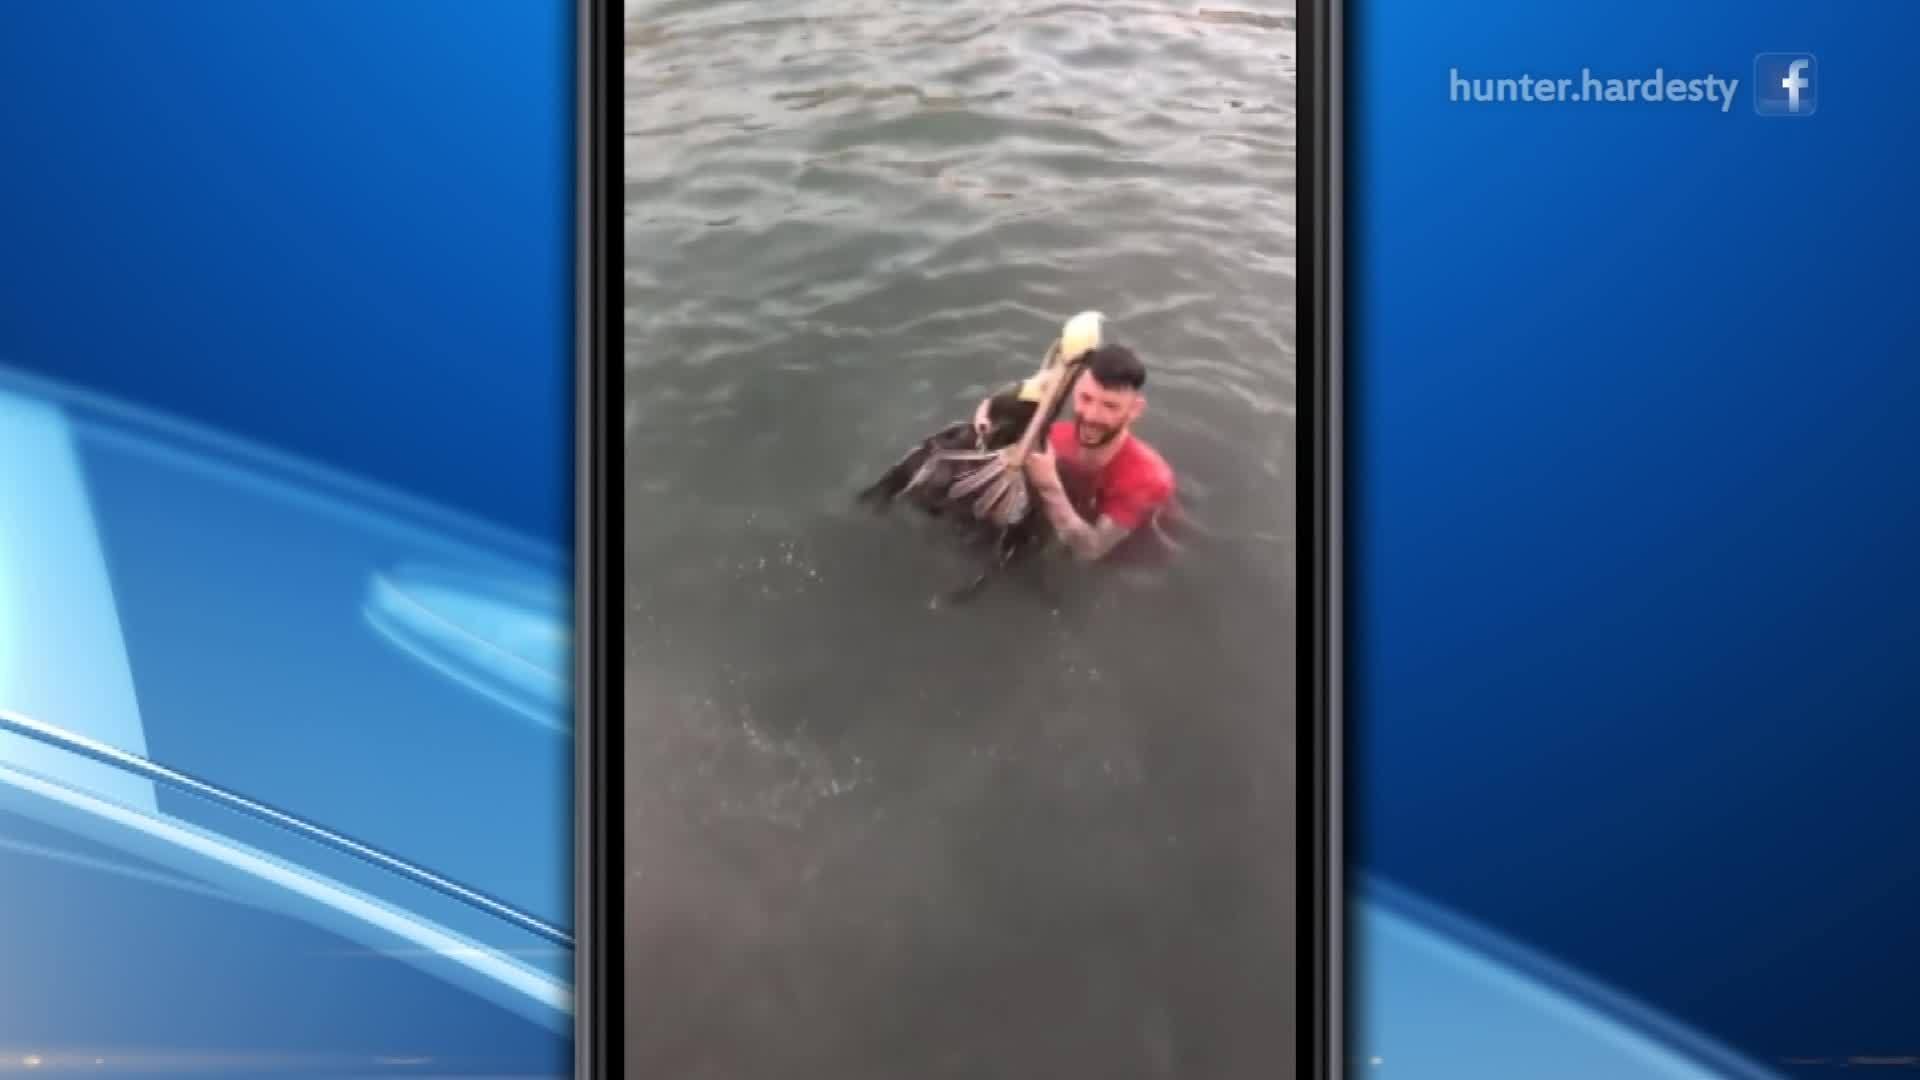 FWC charges man seen jumping on pelican in viral video